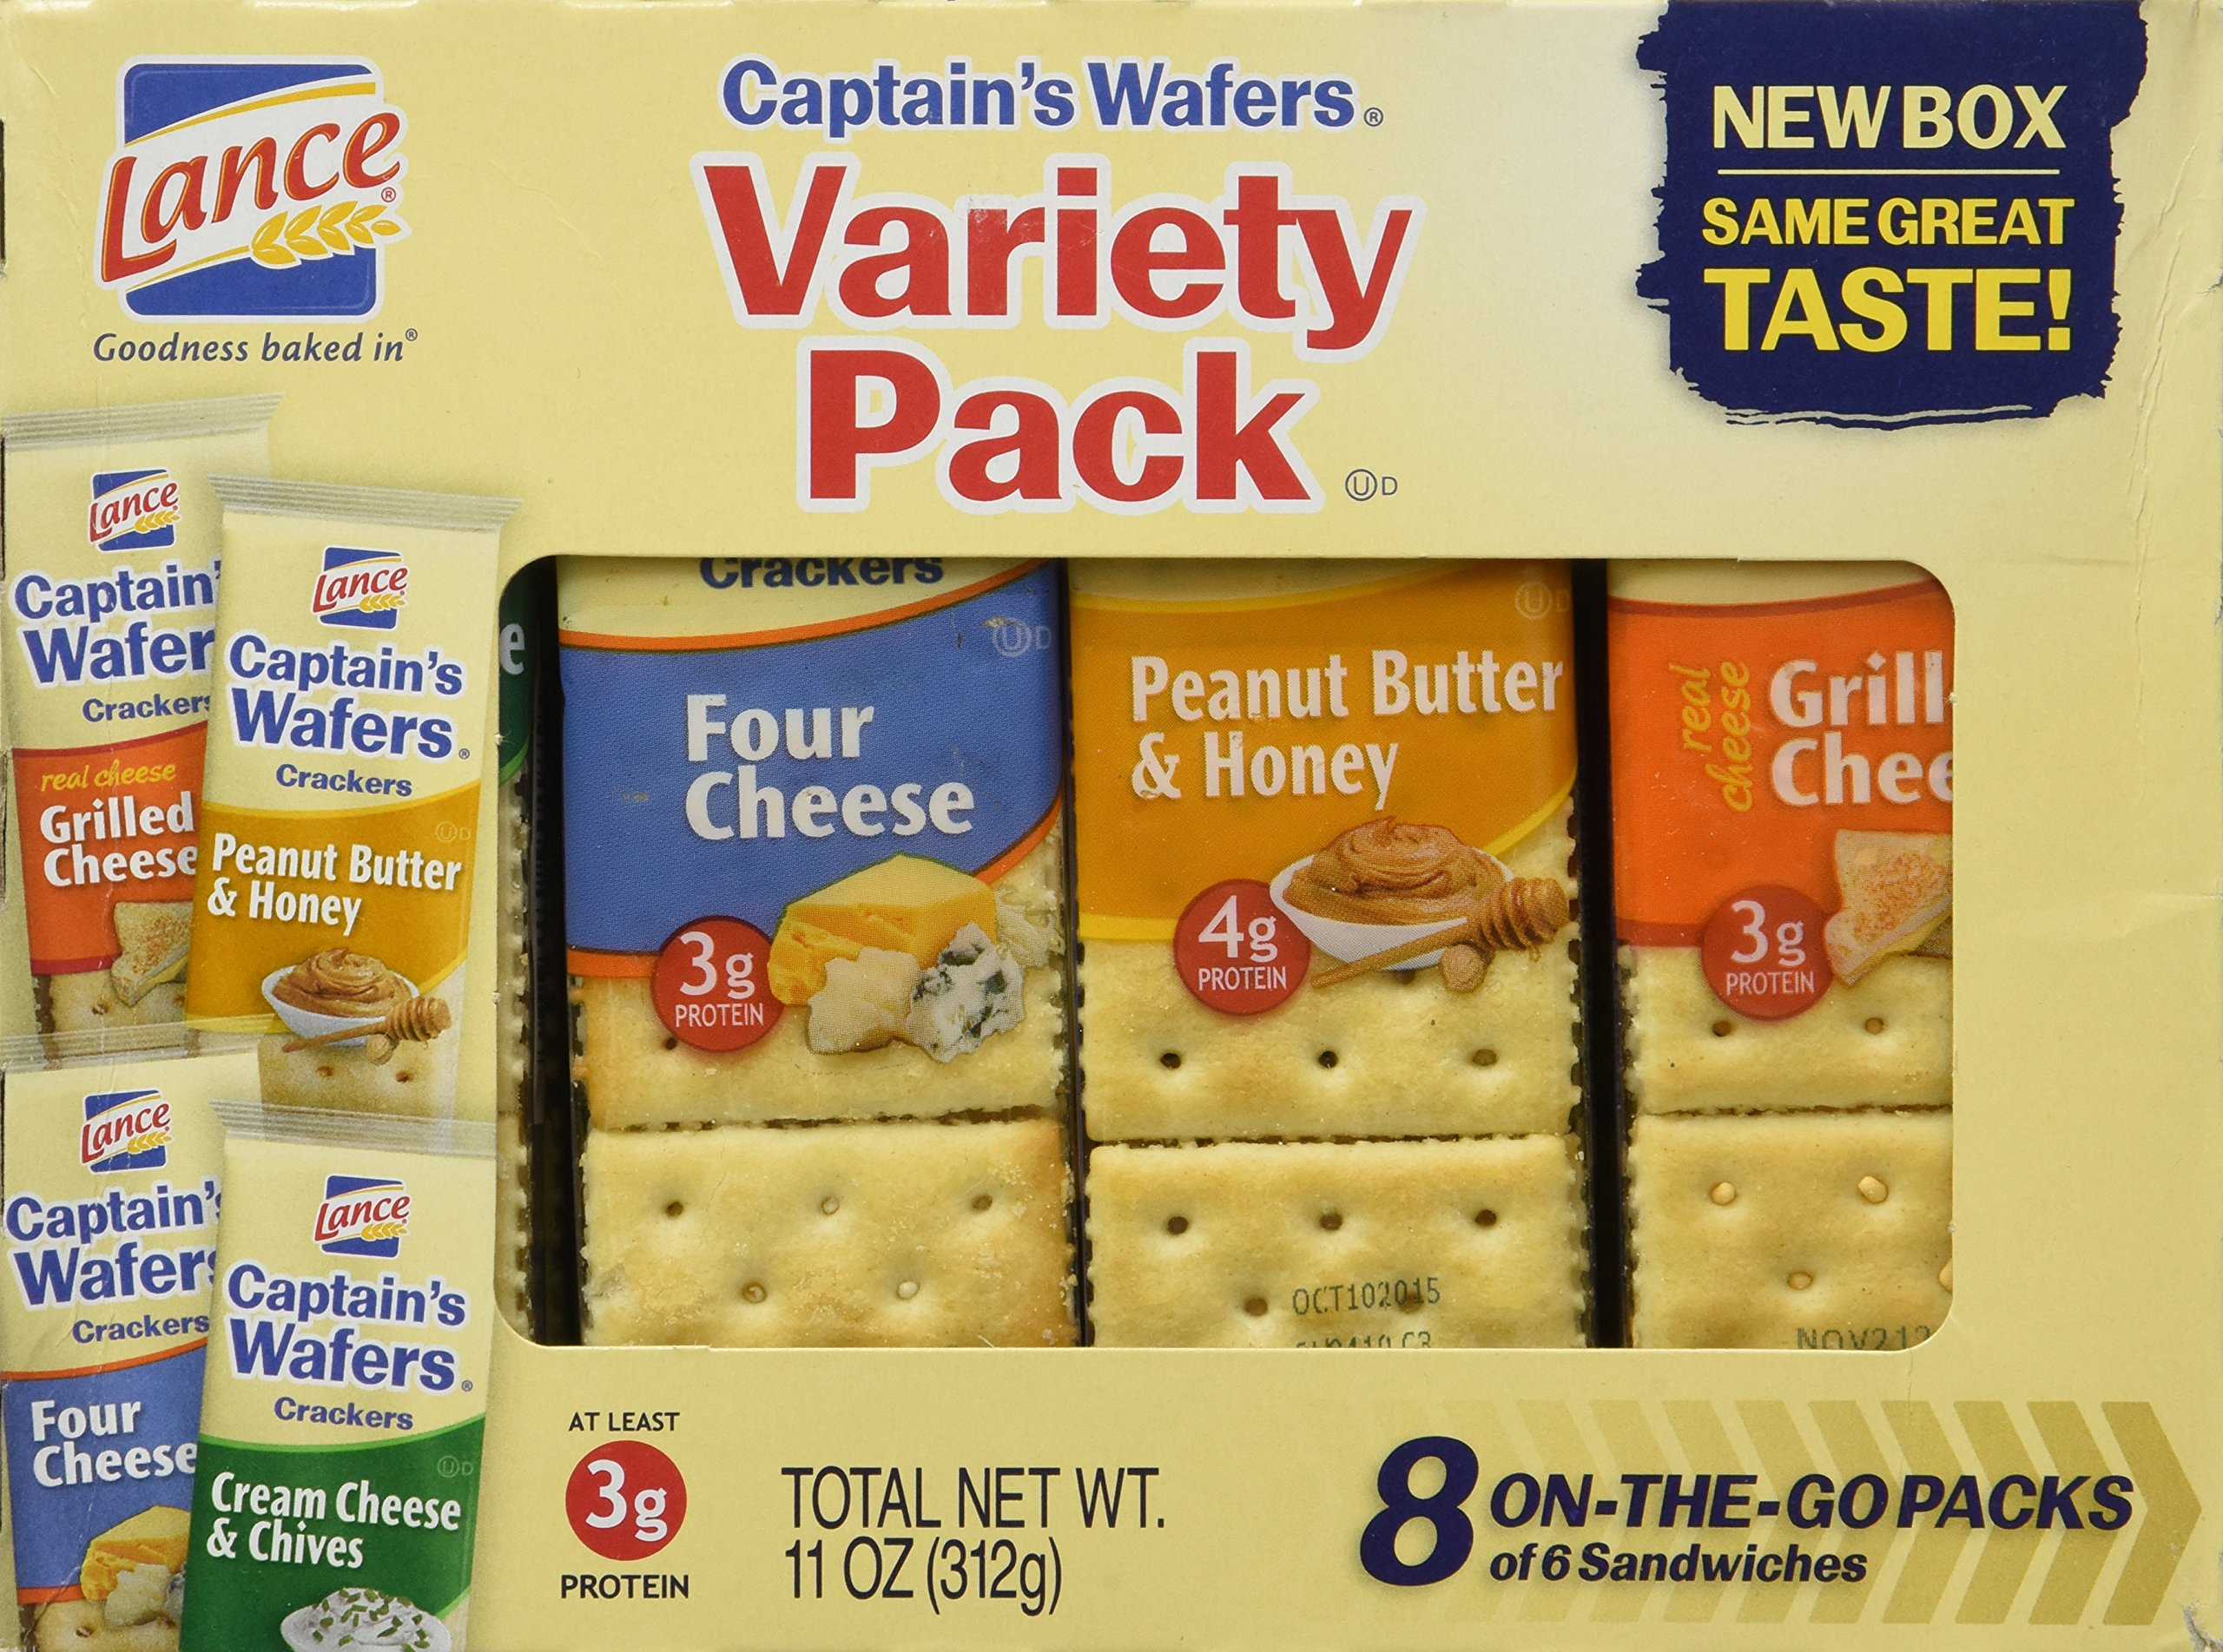 Lance, Captain's Wafer Crackers, Variety Pack, 11oz Tray (Pack of 3)